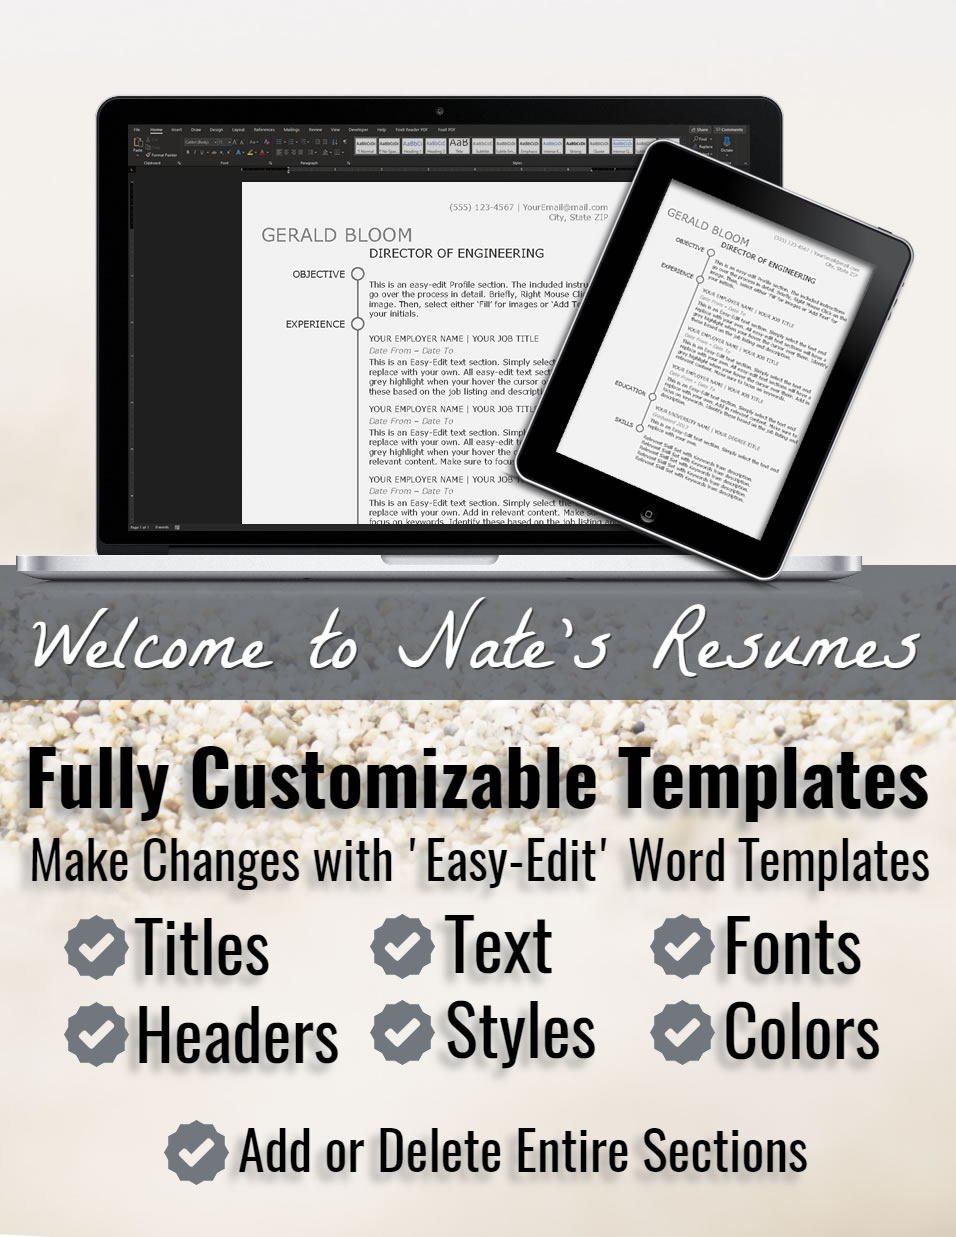 STEMPro - Make-Easy-Edits-to-Templates-LONG